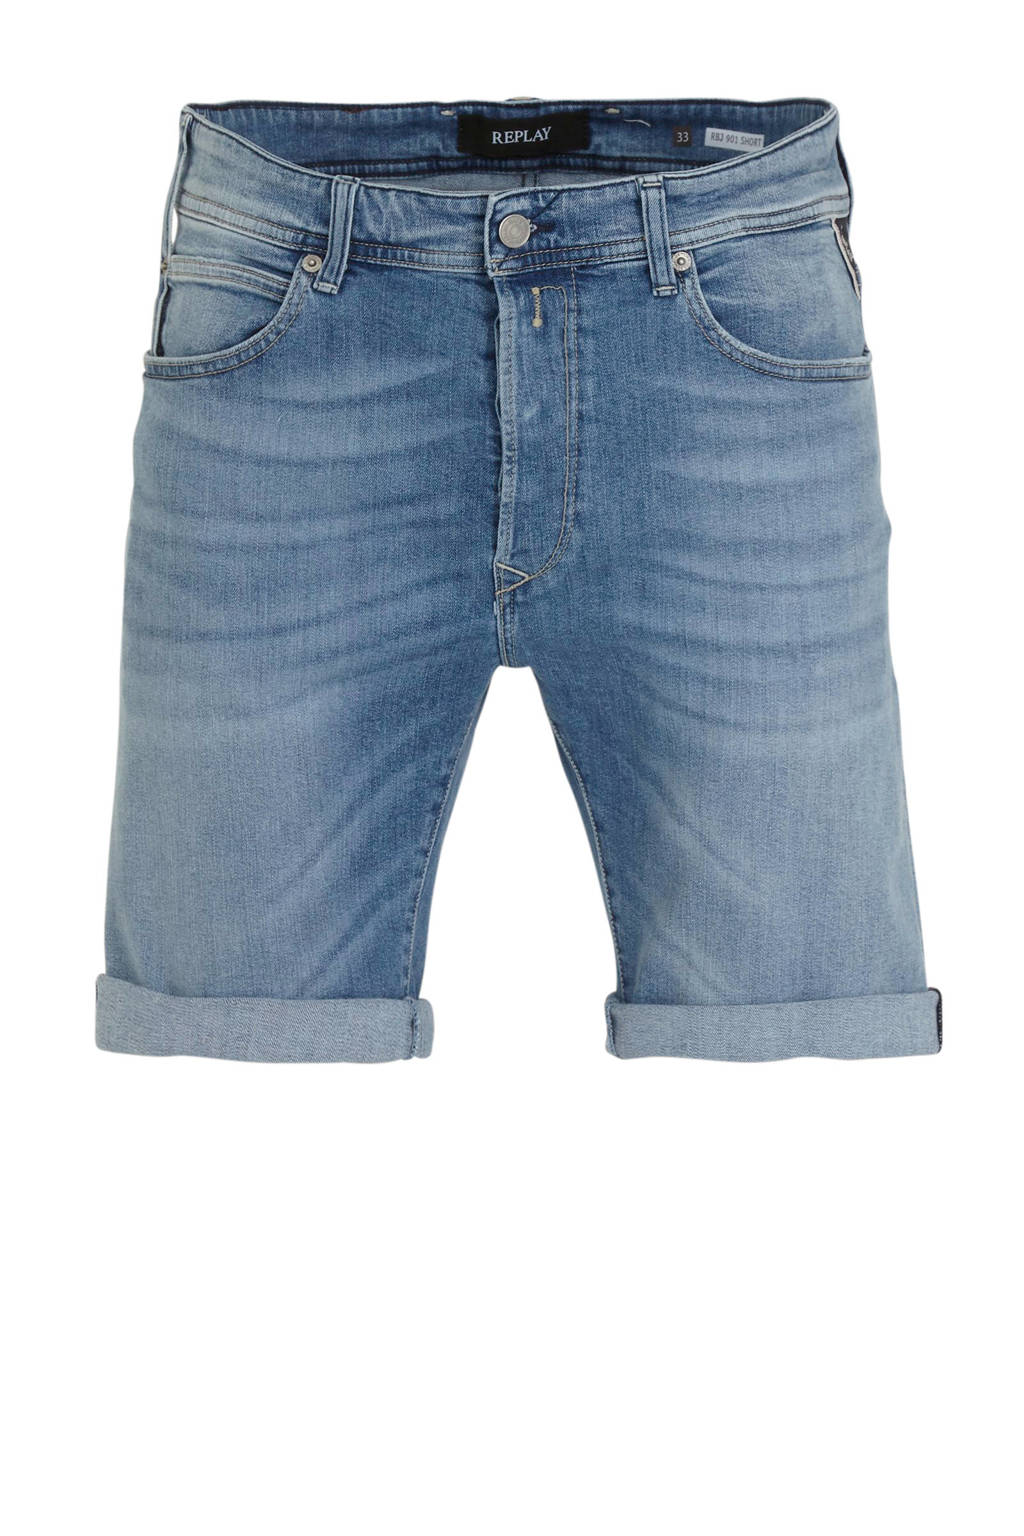 REPLAY regular fit jeans short light blue, Light Blue